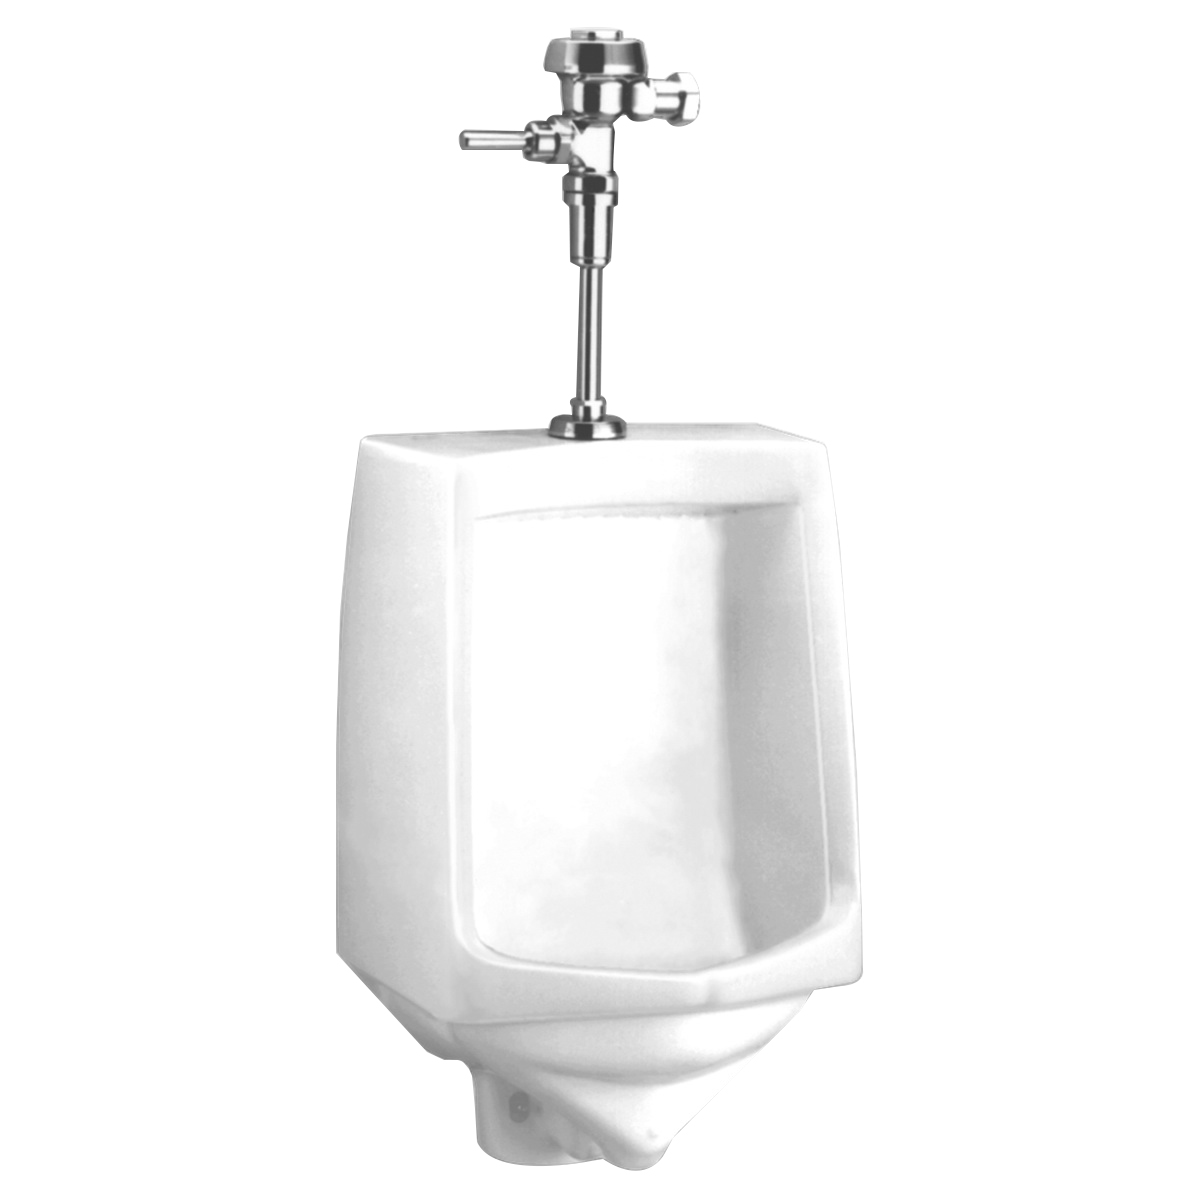 American Standard Trimbrook 6561.017.020 White Vitreous China Wall Mount Low Consumption Low Flow Urinal, NPTF Outlet, 1 gpf